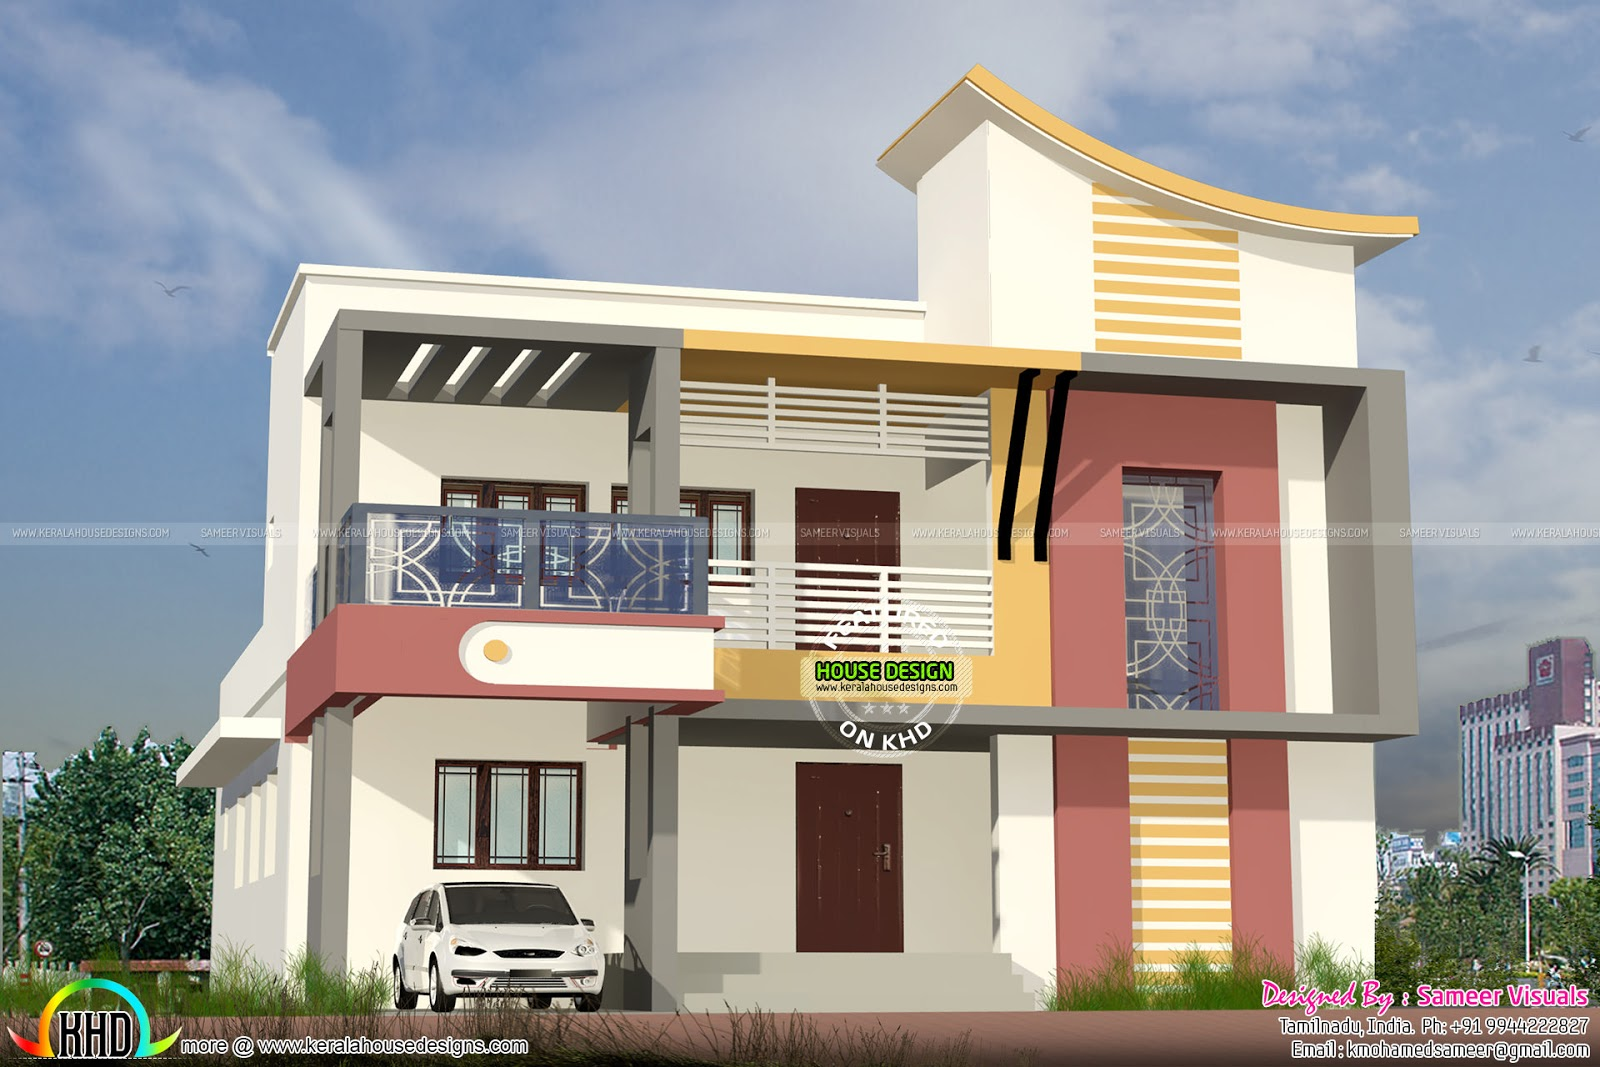 Model house plan in tamilnadu joy studio design gallery for Home designs in tamilnadu